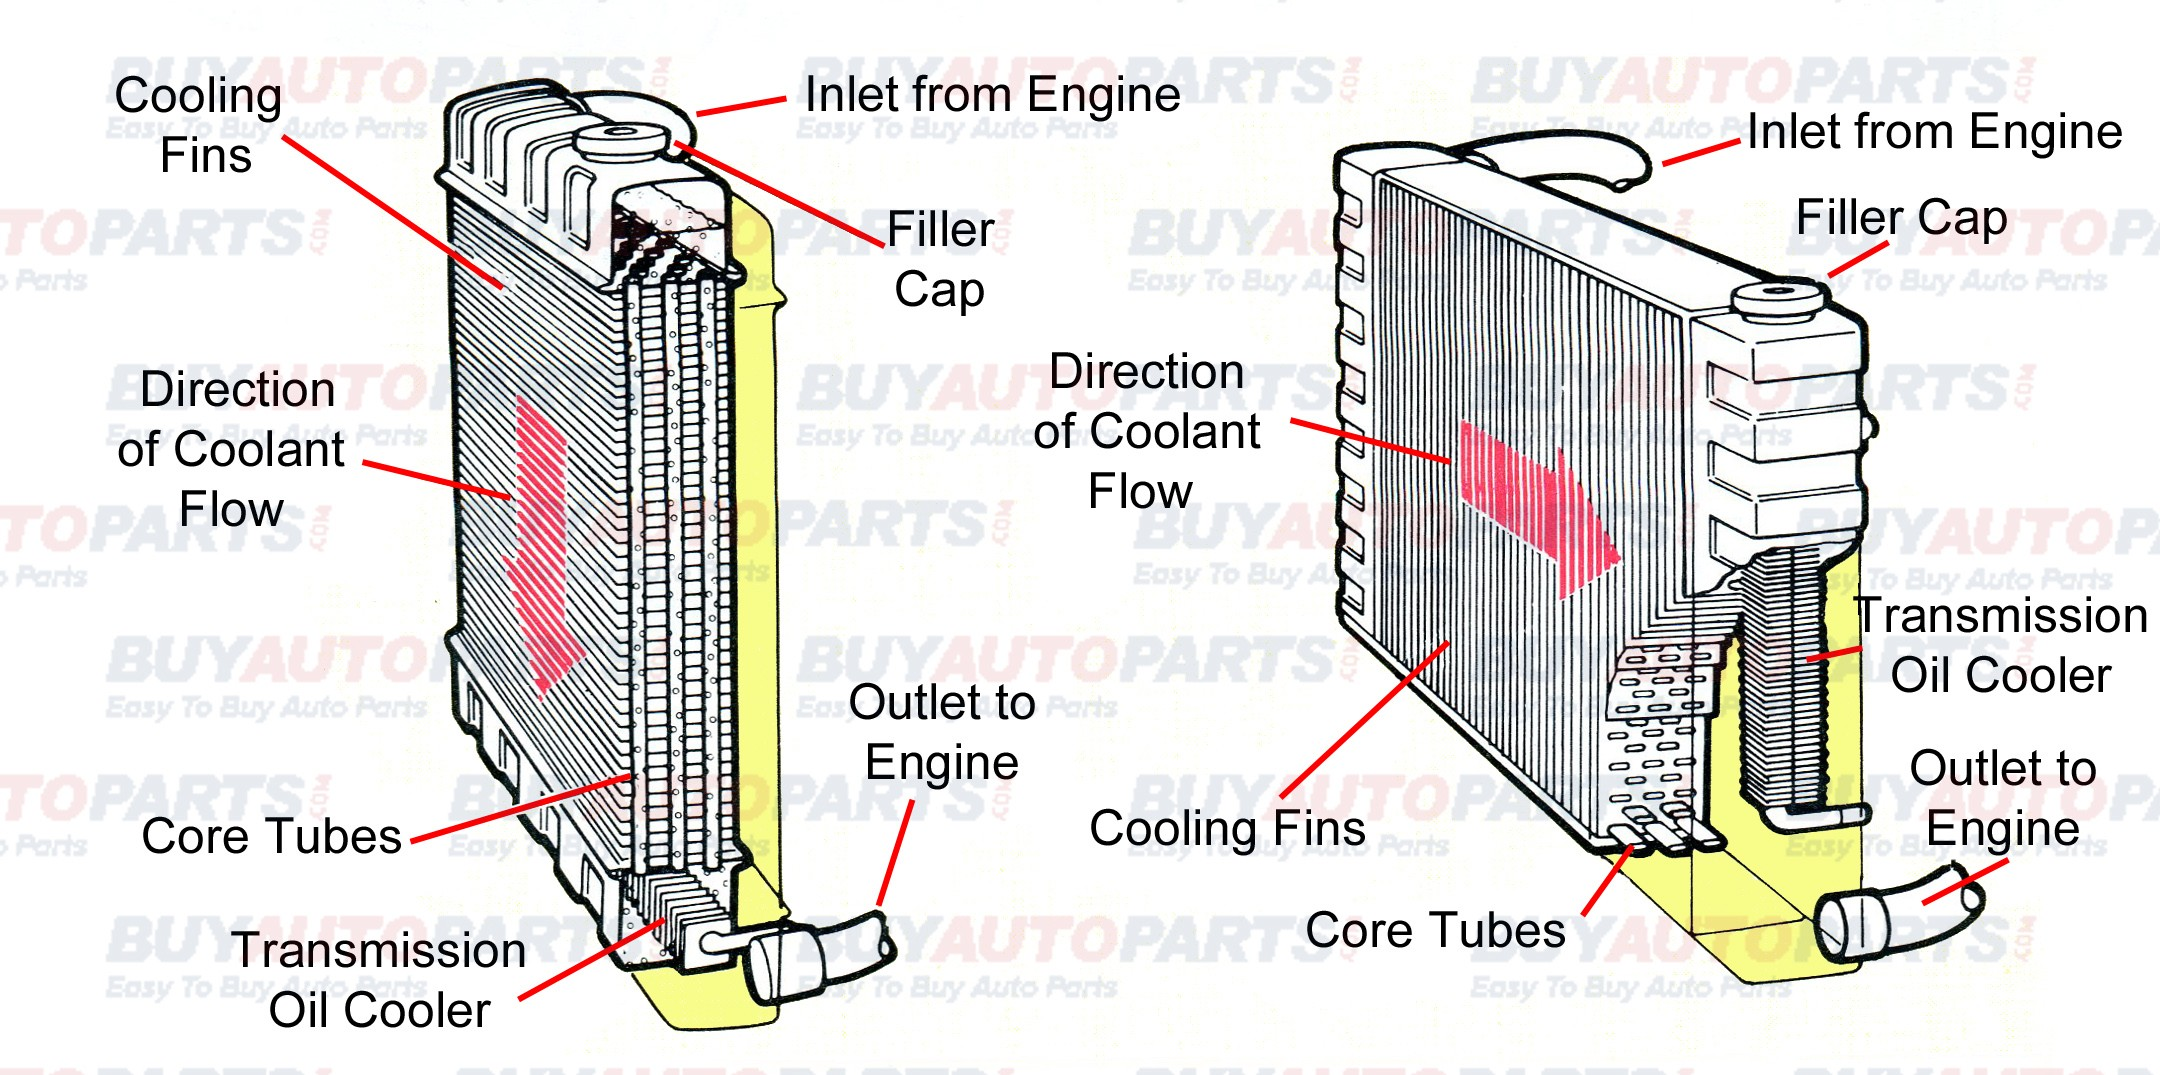 Coolant System Diagram Rover Engine Diagrams Wiring My Transmission Radiator Break Down Of